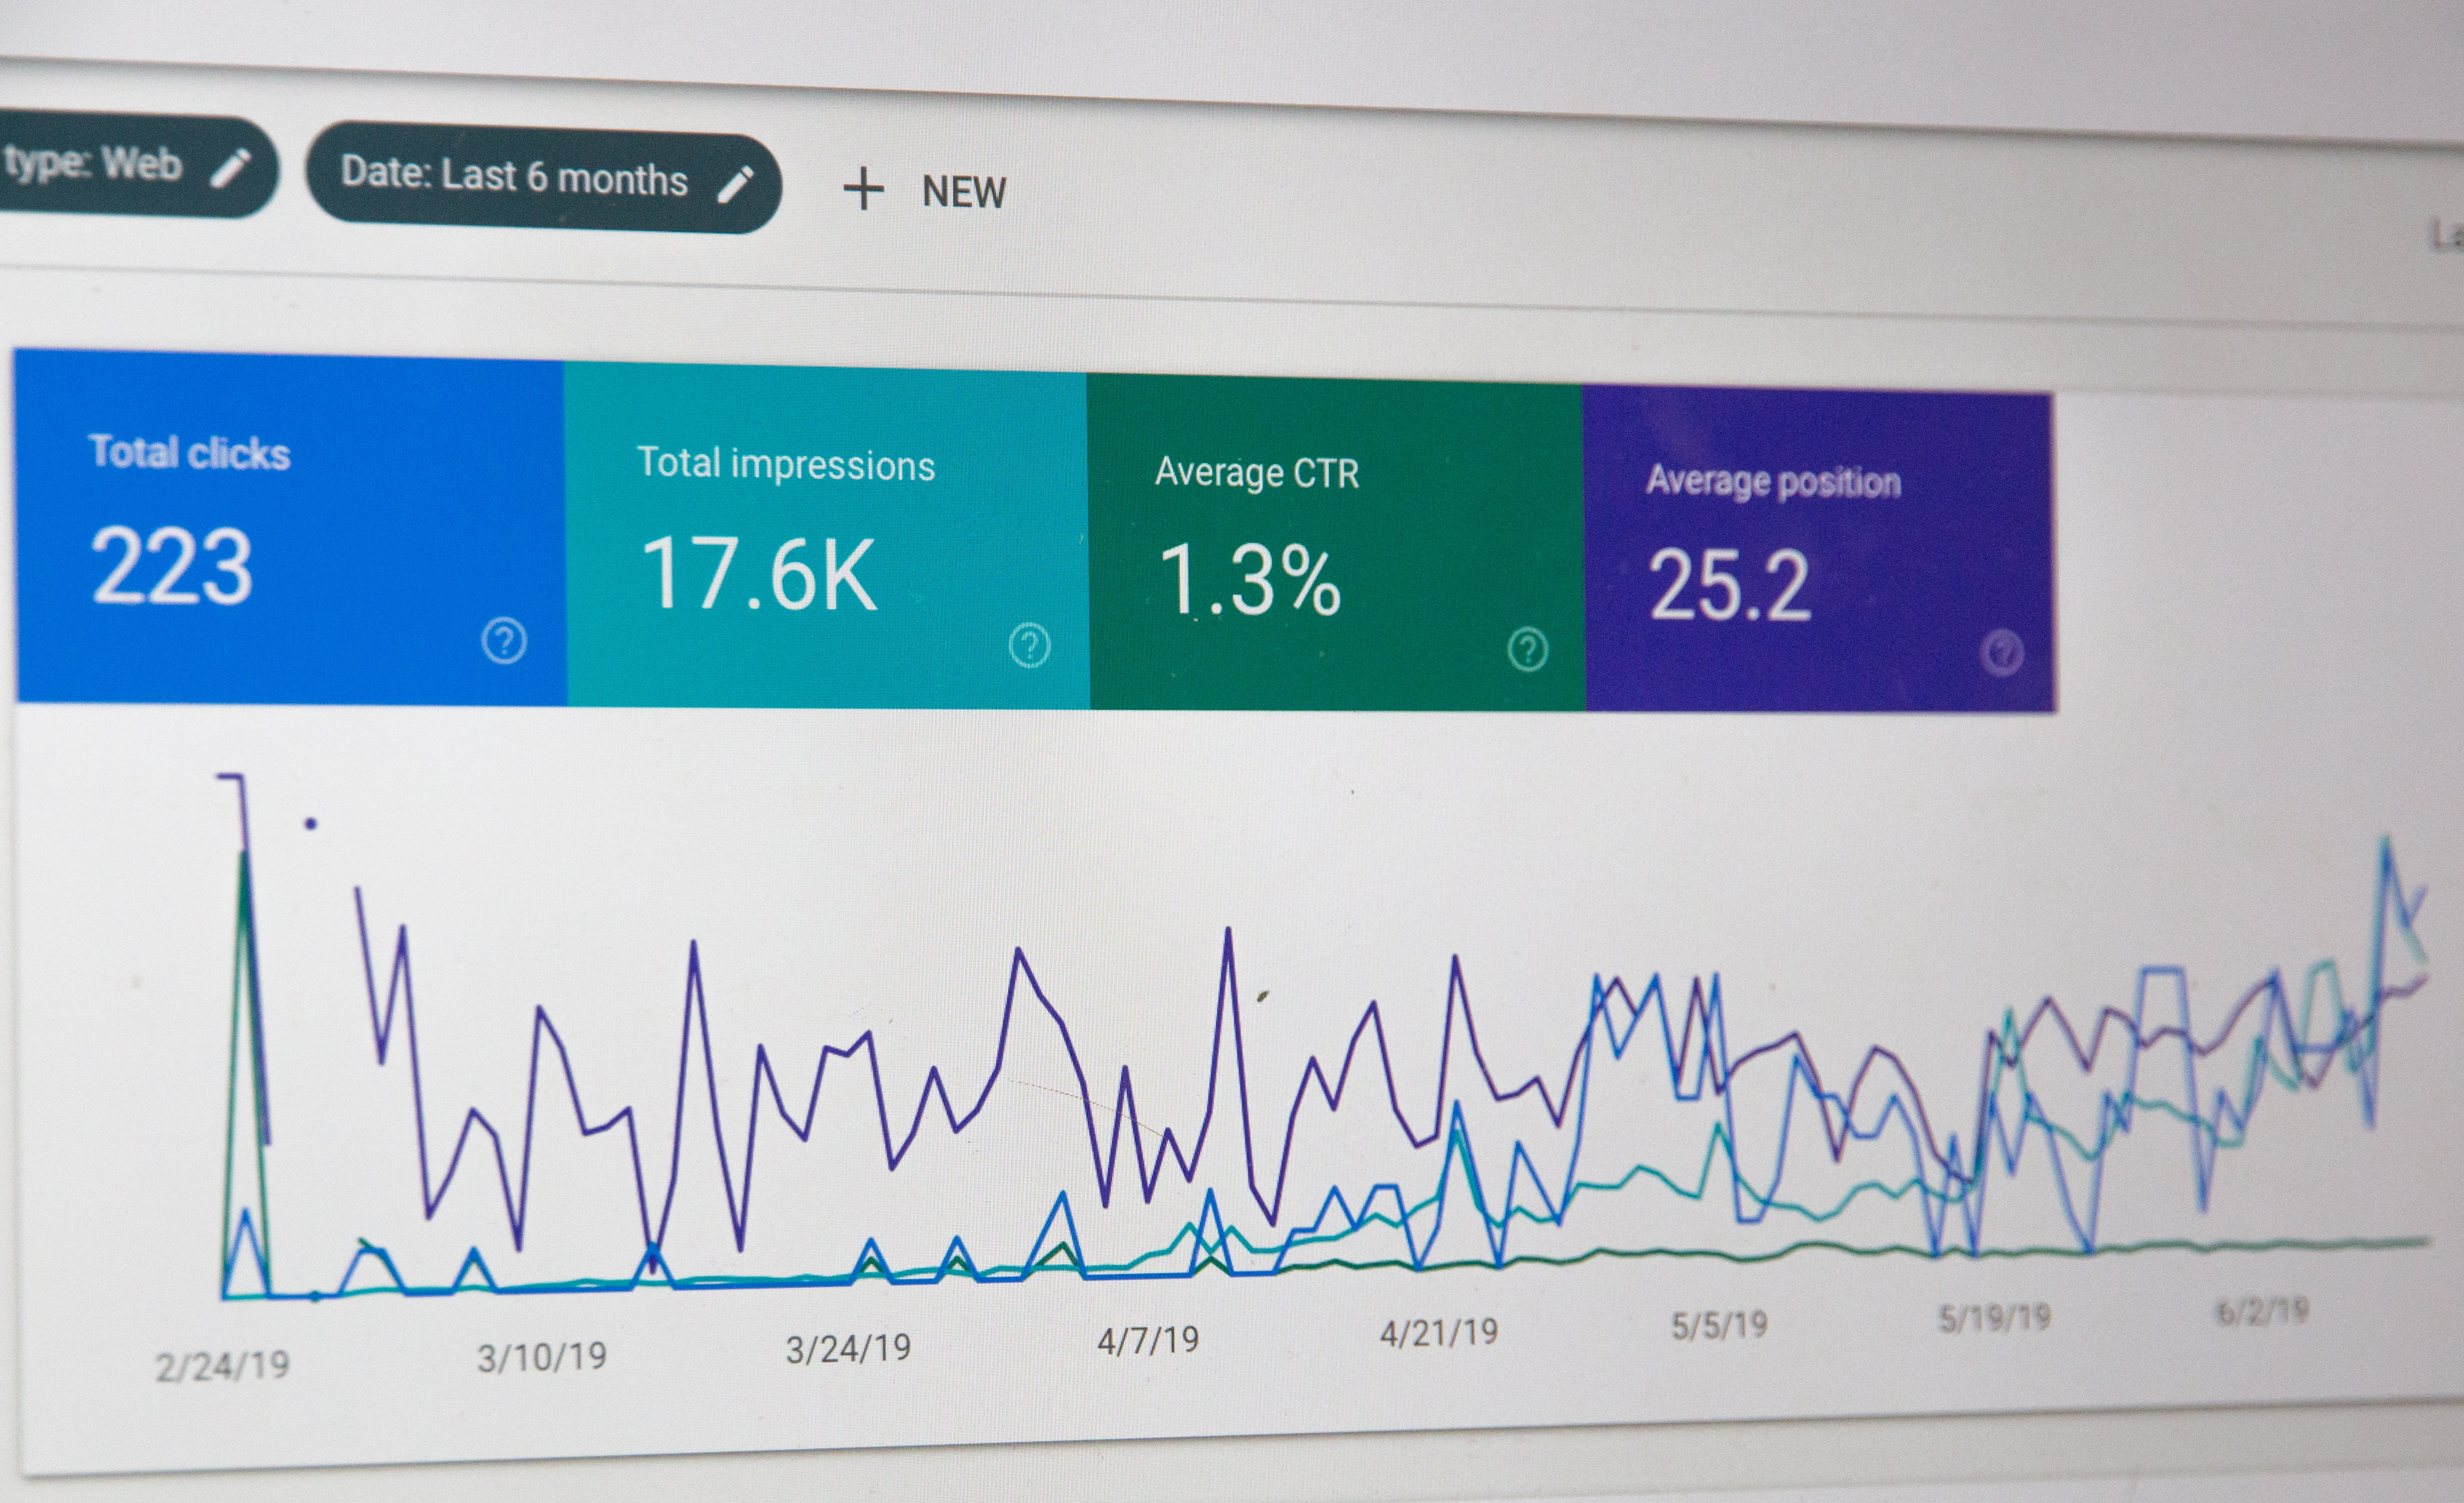 Screenshot of Google Webmaster Tools dat over the last 6 months.